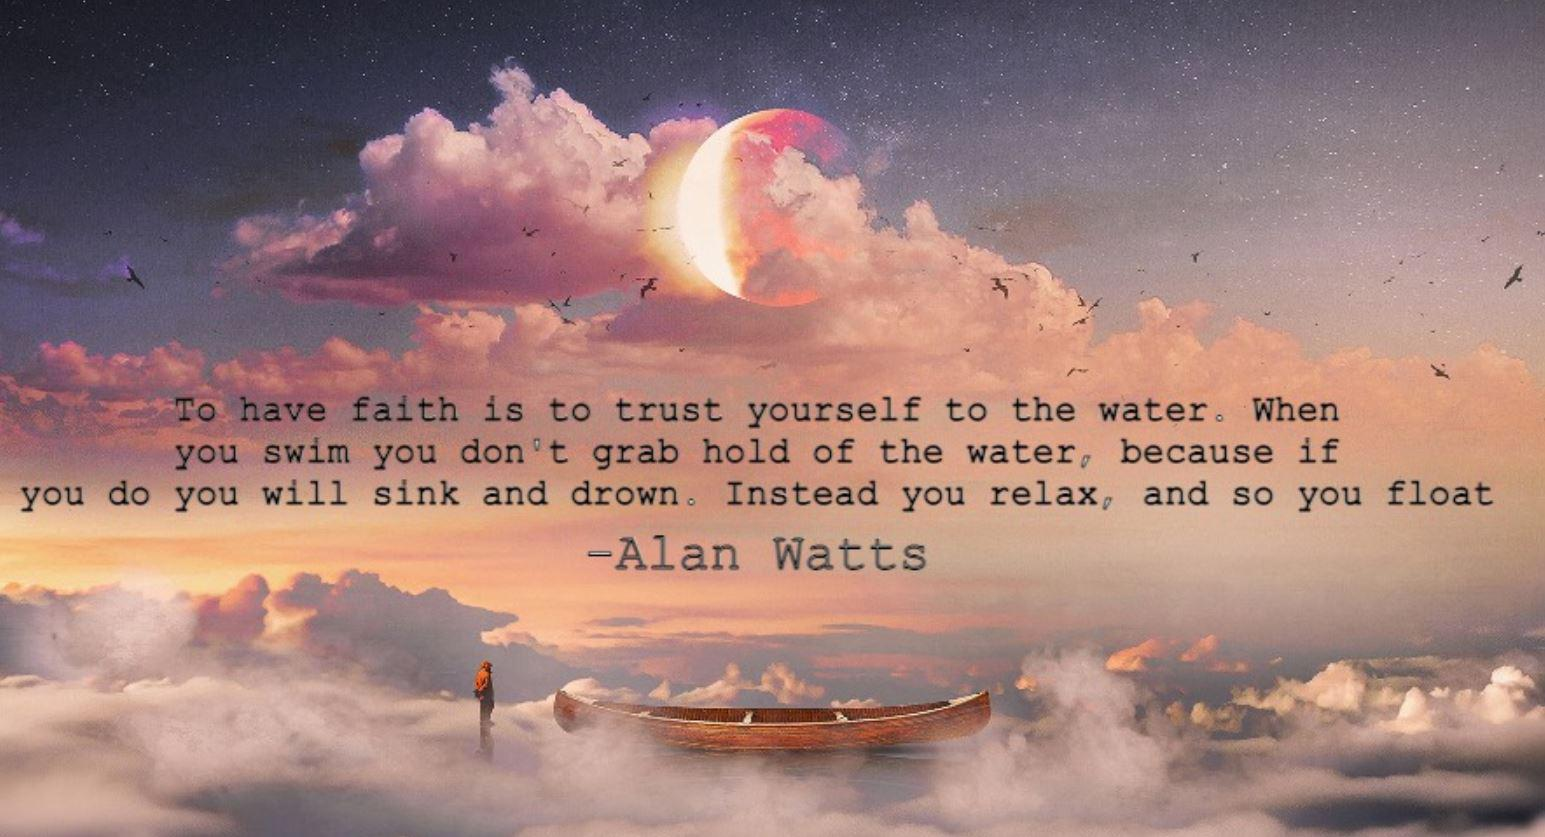 """To have faith is to trust yourself to the water. When you swim you don't grab hold of the water, because if you do you will sink and drown. Instead you relax and, and so you float."" -Alan Watts 1545 x 837"